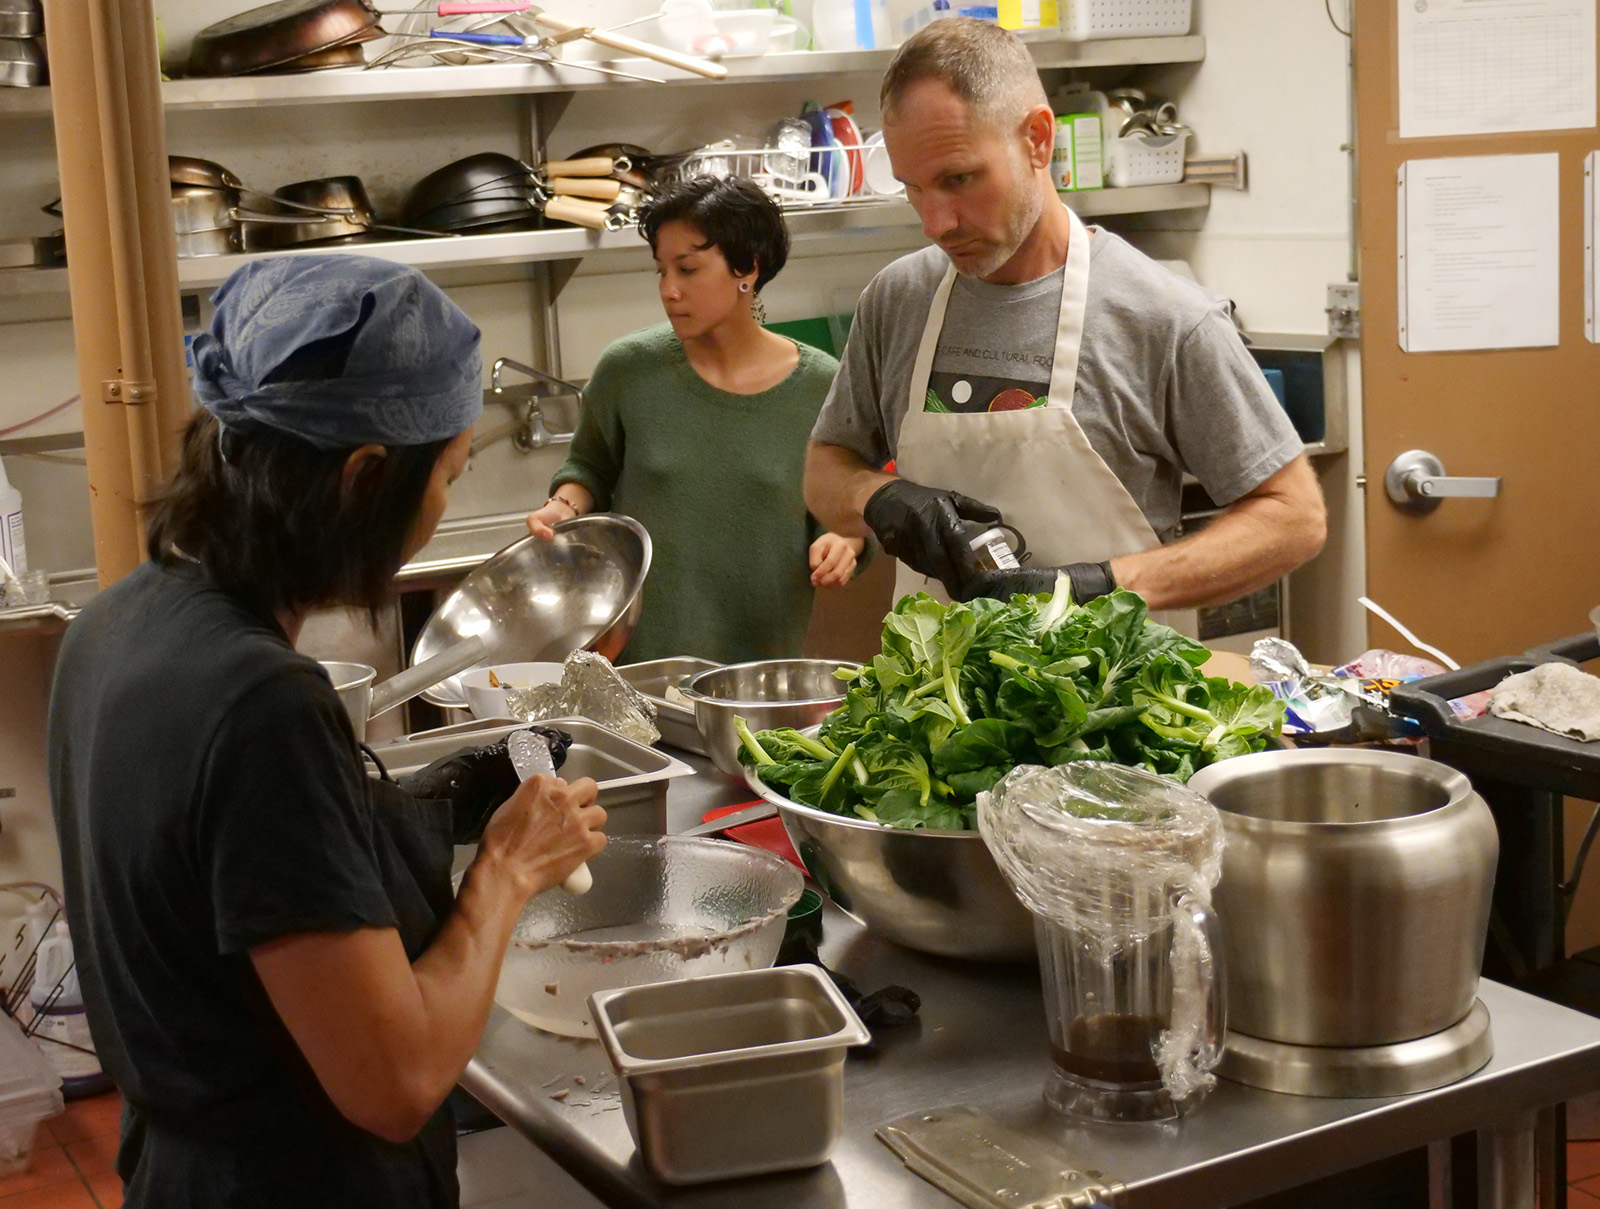 <p>Roots Cafe head chef Jesse Lipman, right, and volunteers prepare lunch Feb. 7 with produce grown farther up the valley at Ho'oulu Aina. The cafe inside the Kalihi Health Center is open to the public Tuesdays and Thursdays from 11:30 a.m. to 1:30 p.m.</p>